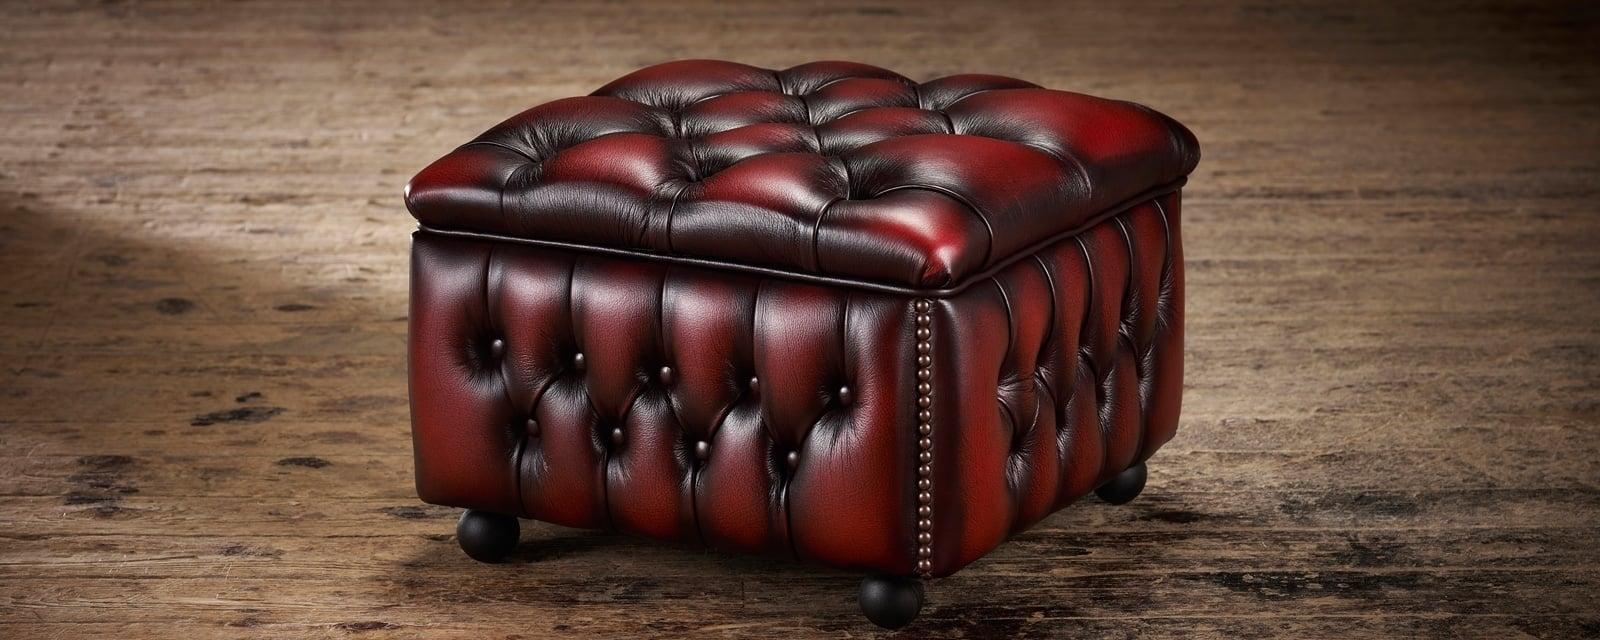 Chesterfield Footstools Handcrafted In Leather Fabric Timeless Throughout Fabric Footstools And Pouffes (Image 2 of 15)